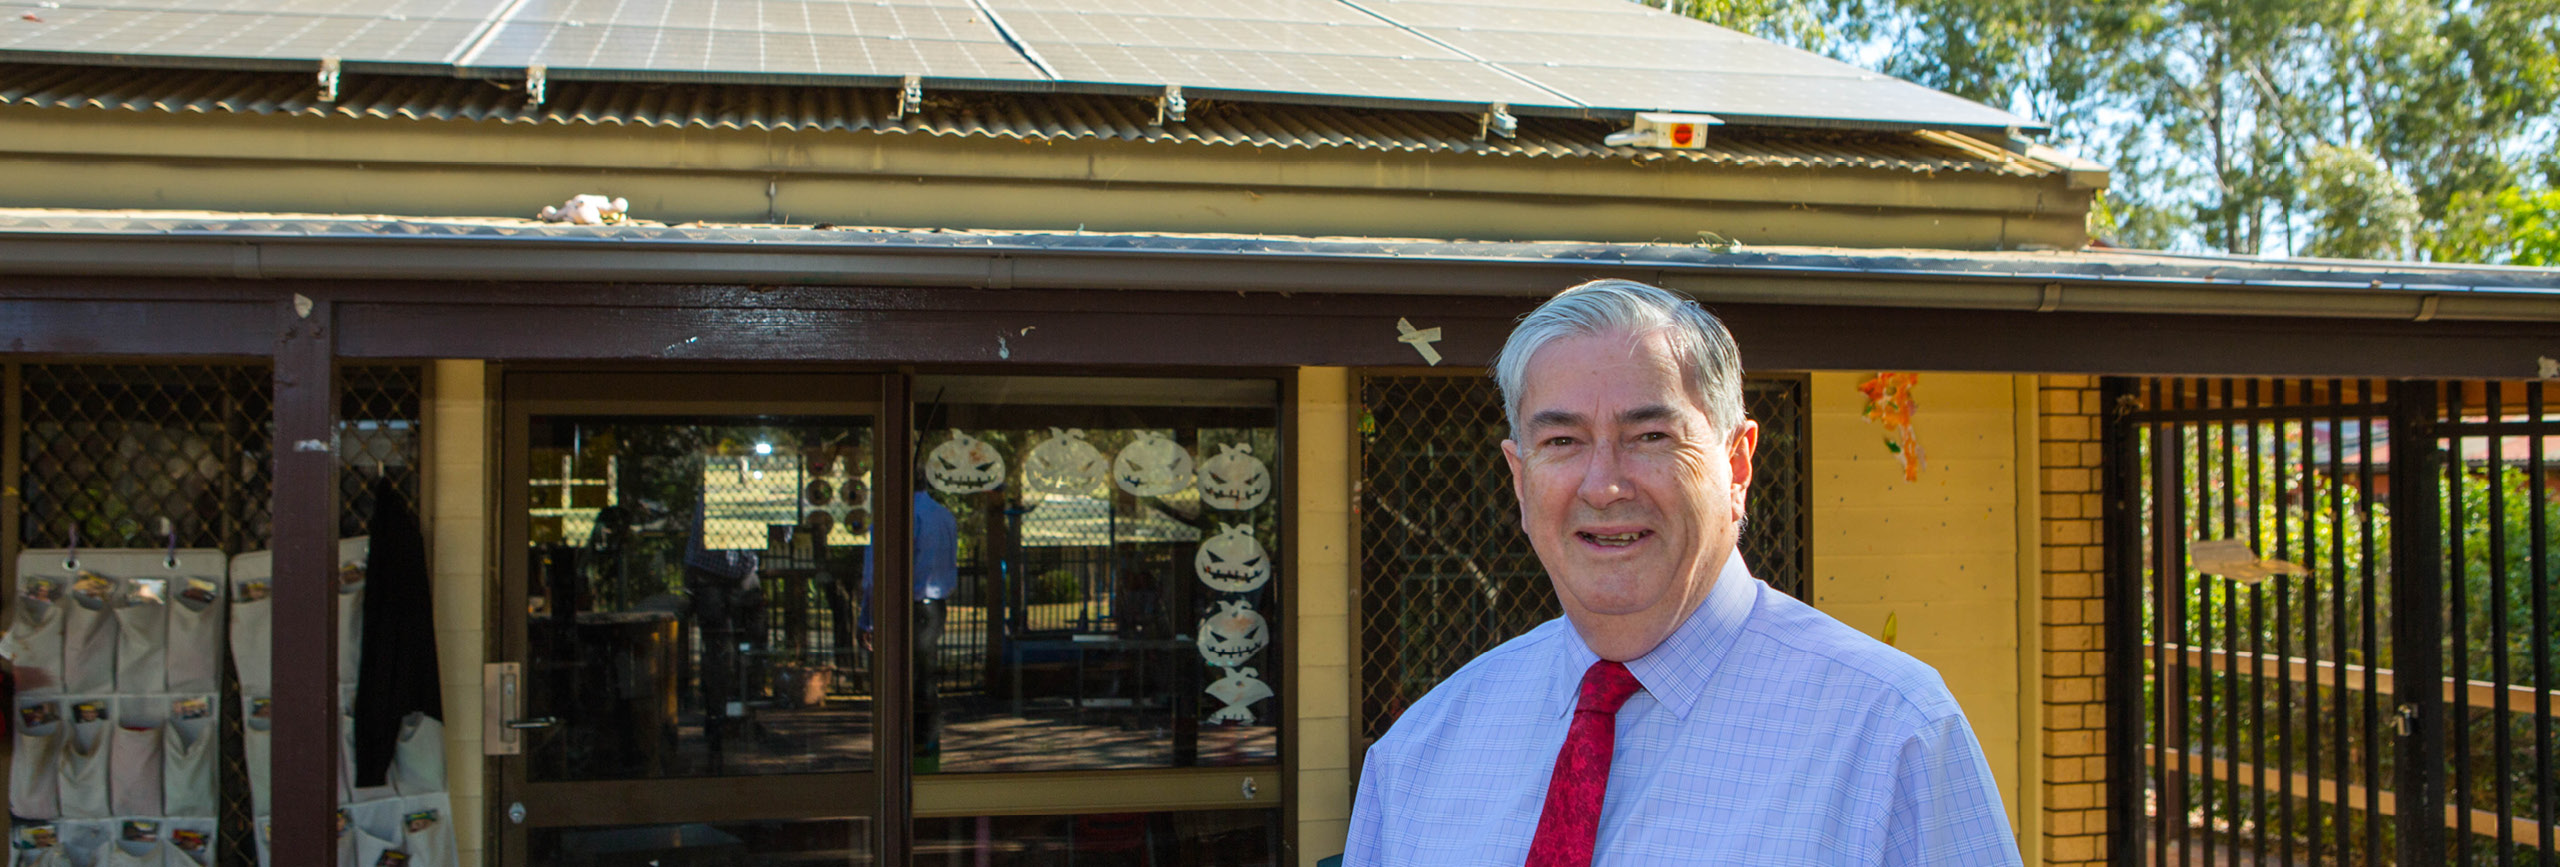 Mayor Cr Ross Fowler OAM shows off solar panels